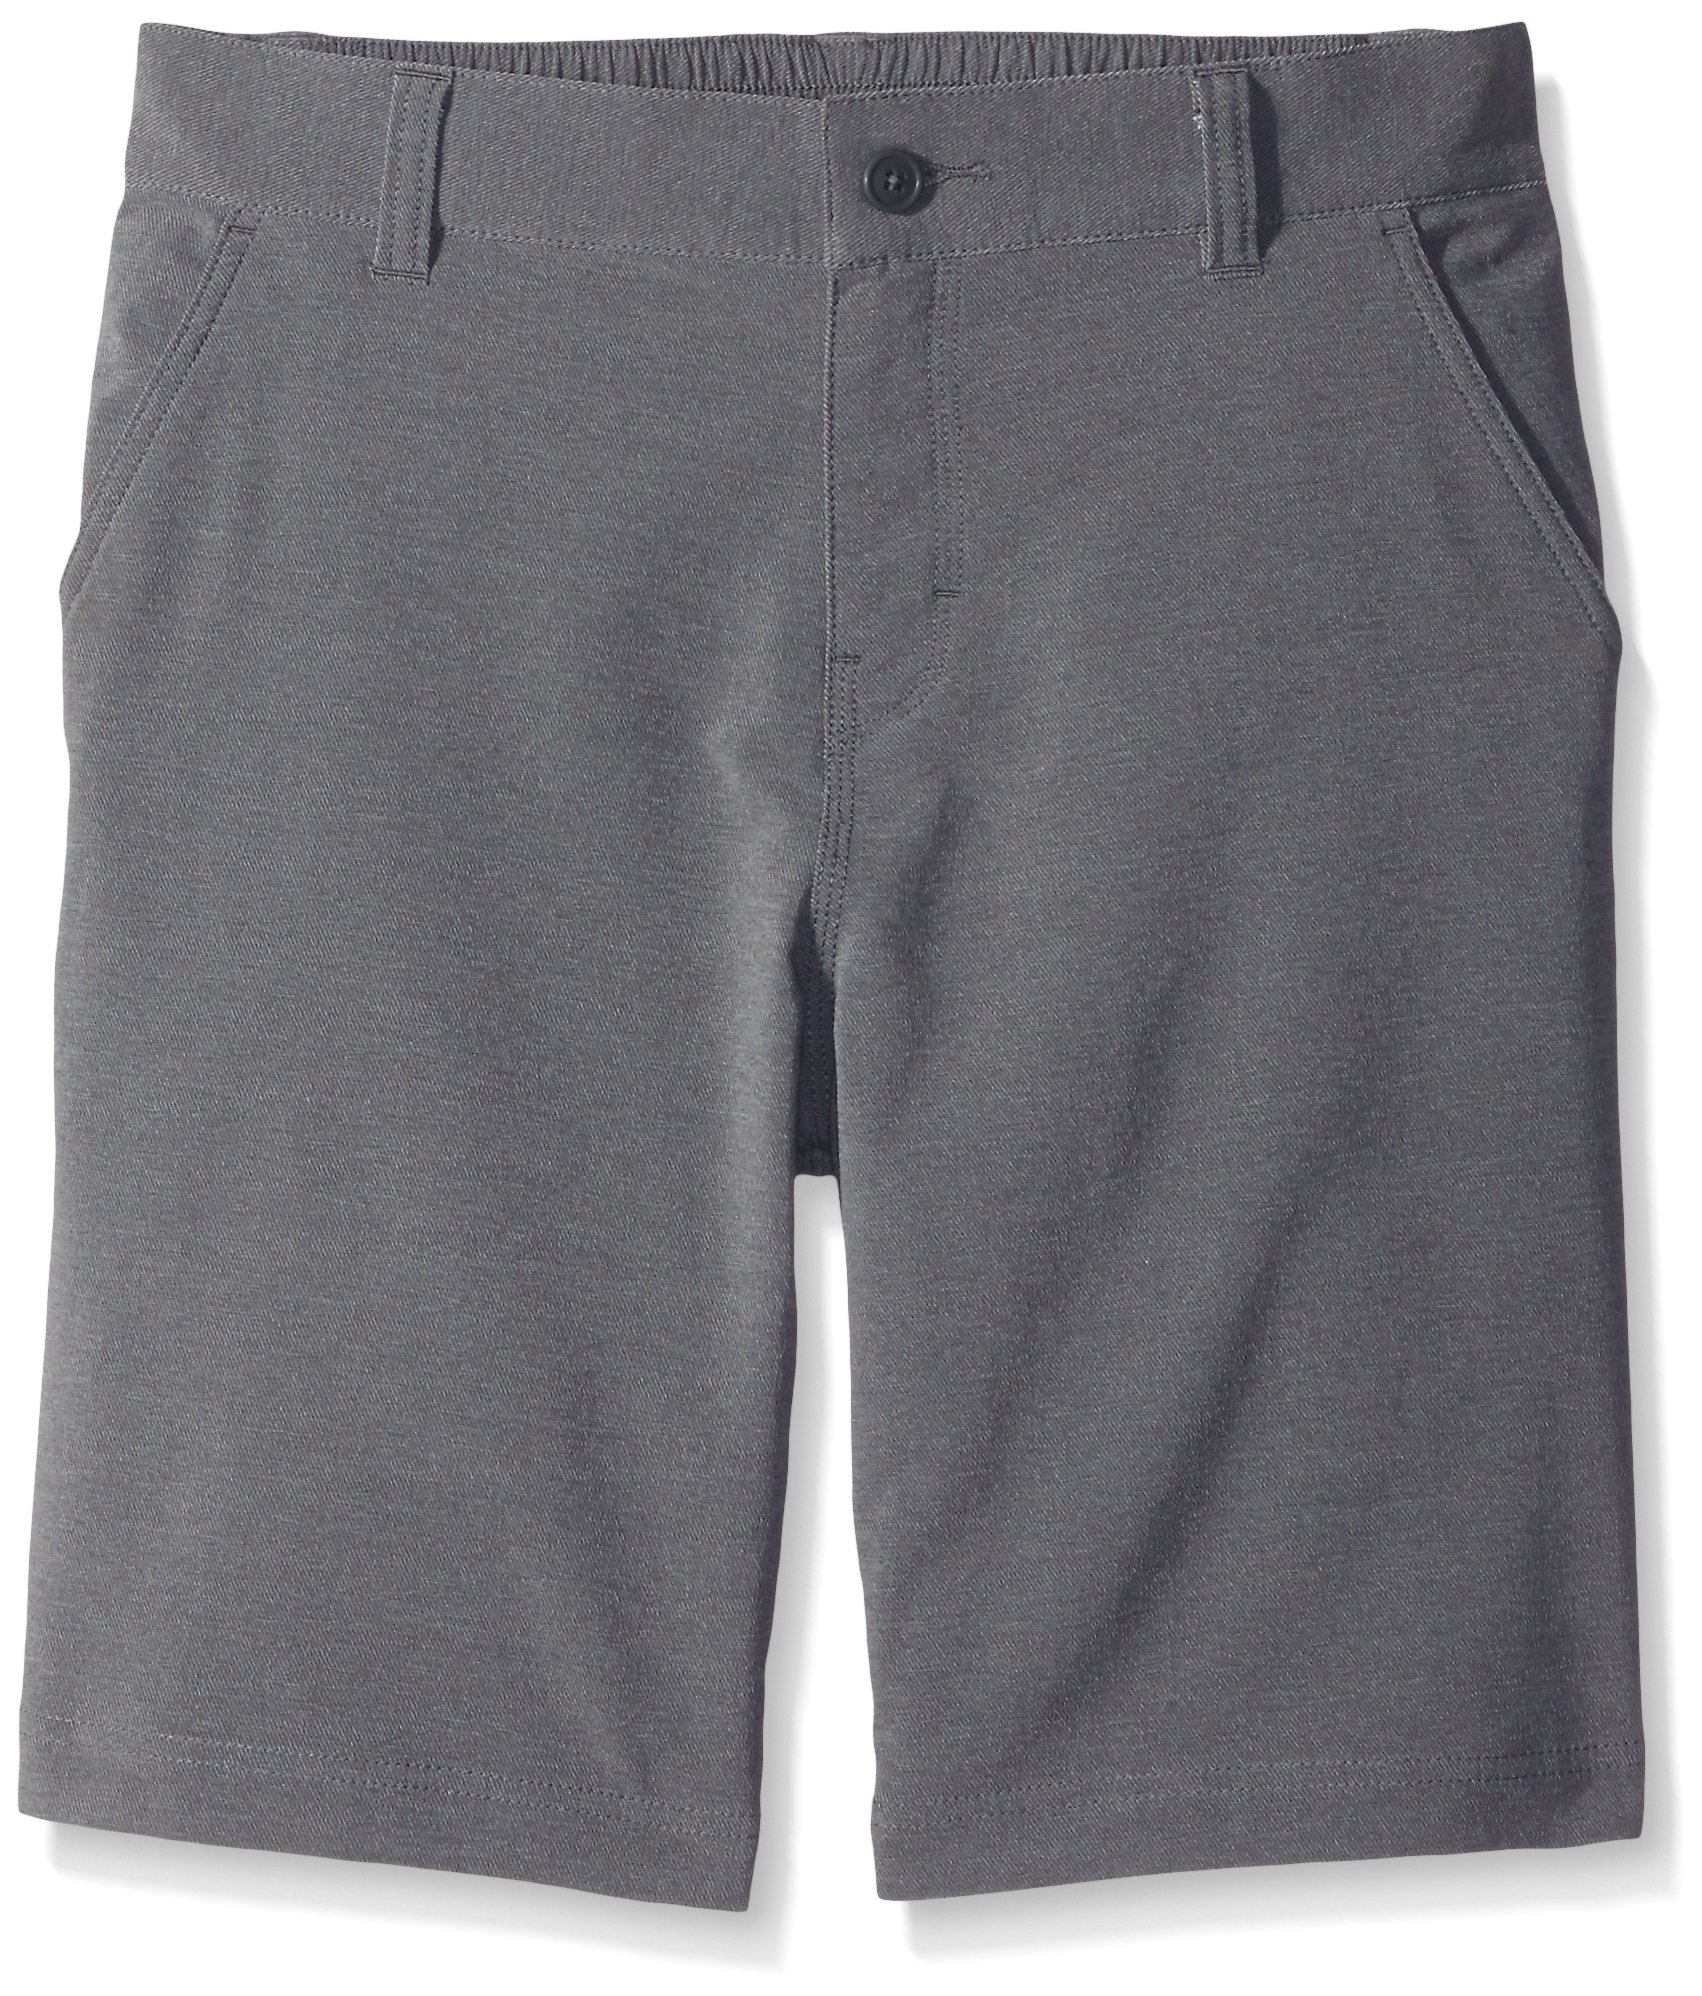 Columbia Boys B Incogneato Hybrid Short, Grill, XX-Small